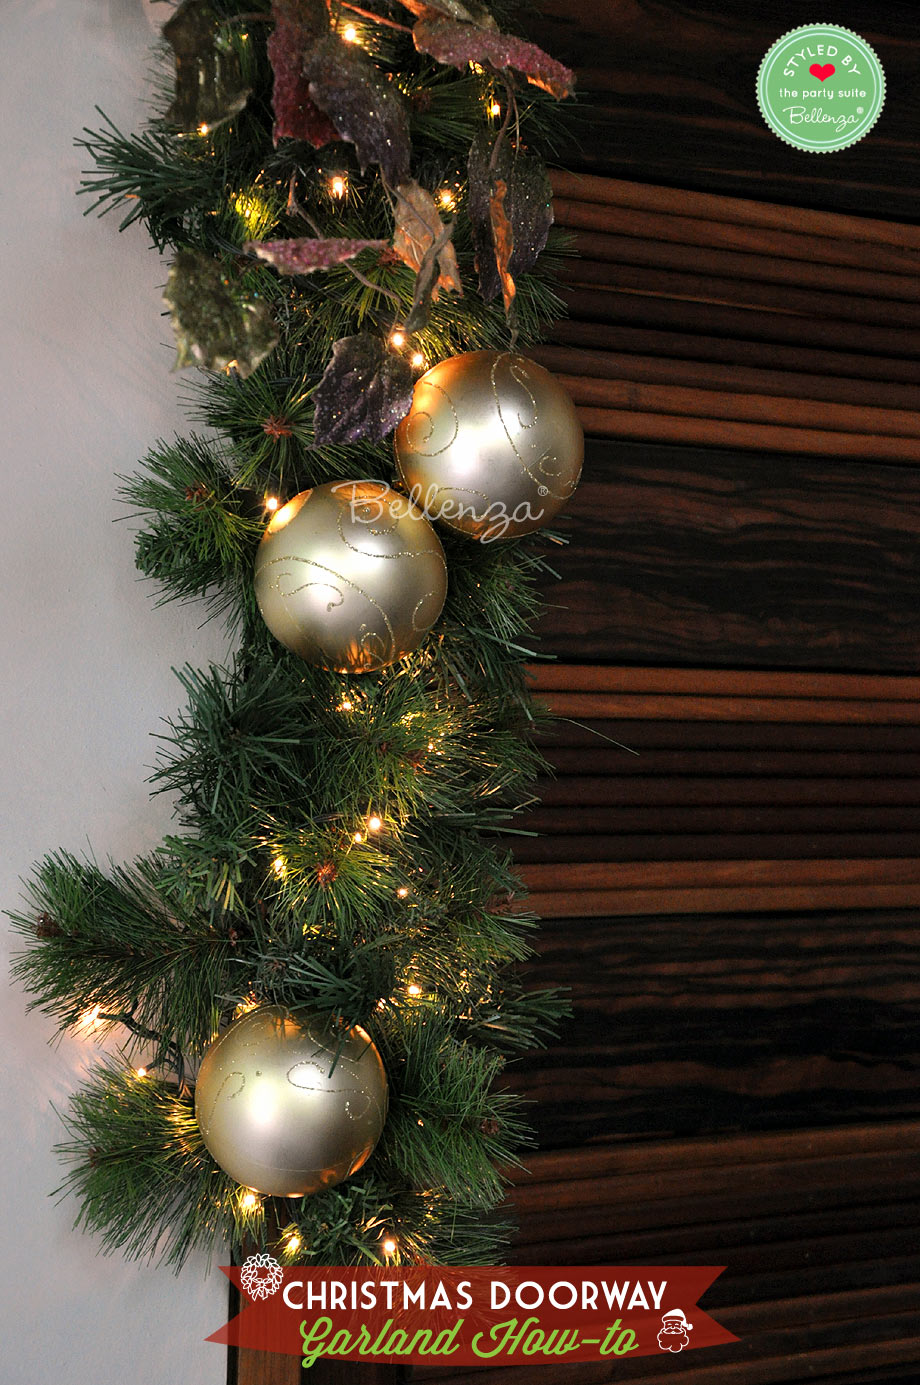 Golden baubles on Christmas garland doorway // Bellenza